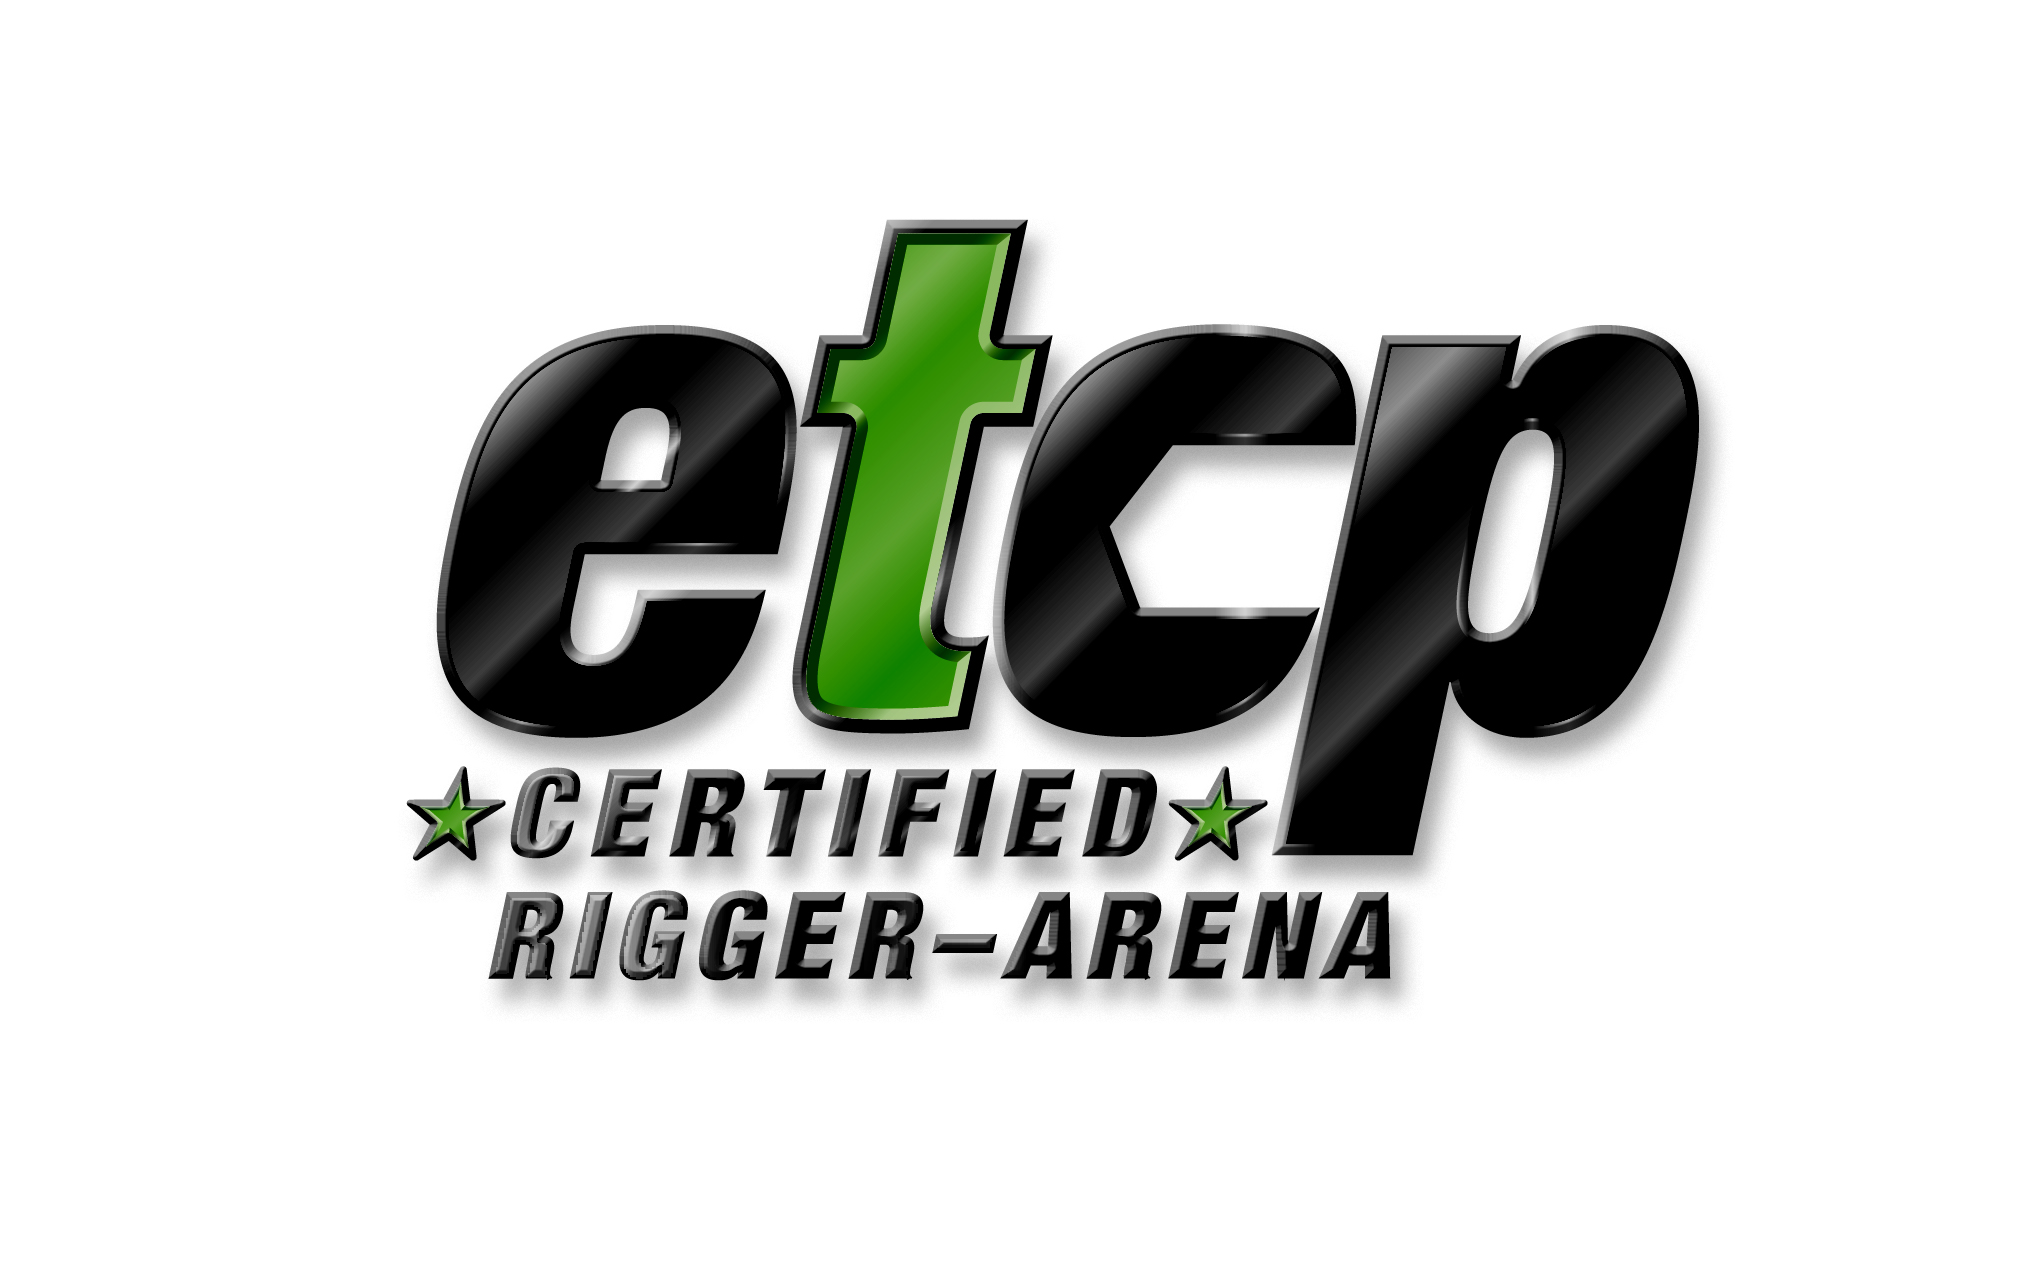 John bleich production rigging resources inc certified rigger arena 1betcityfo Images